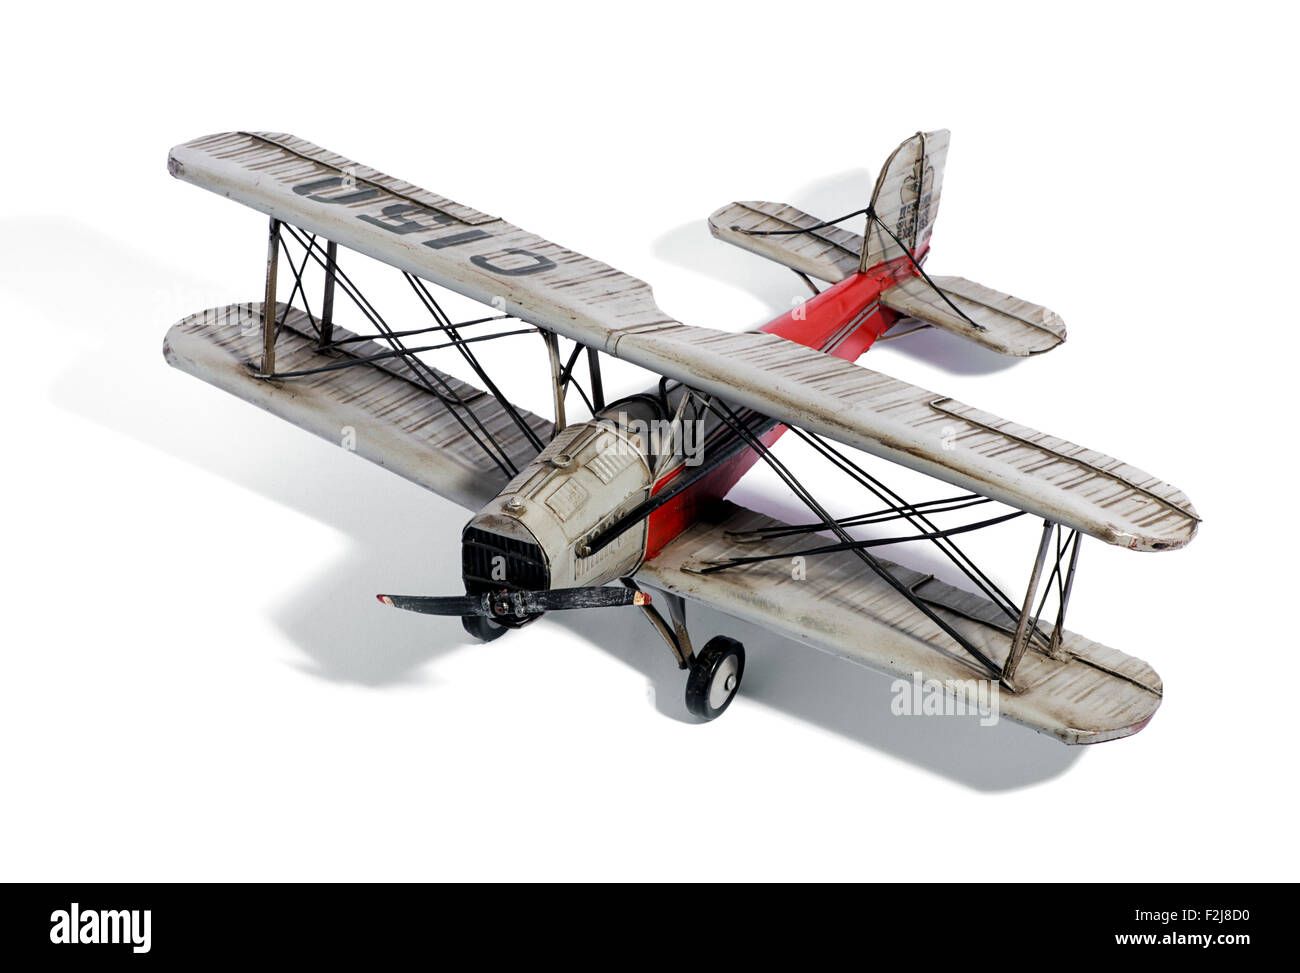 Scale model of a vintage biplane - Stock Image